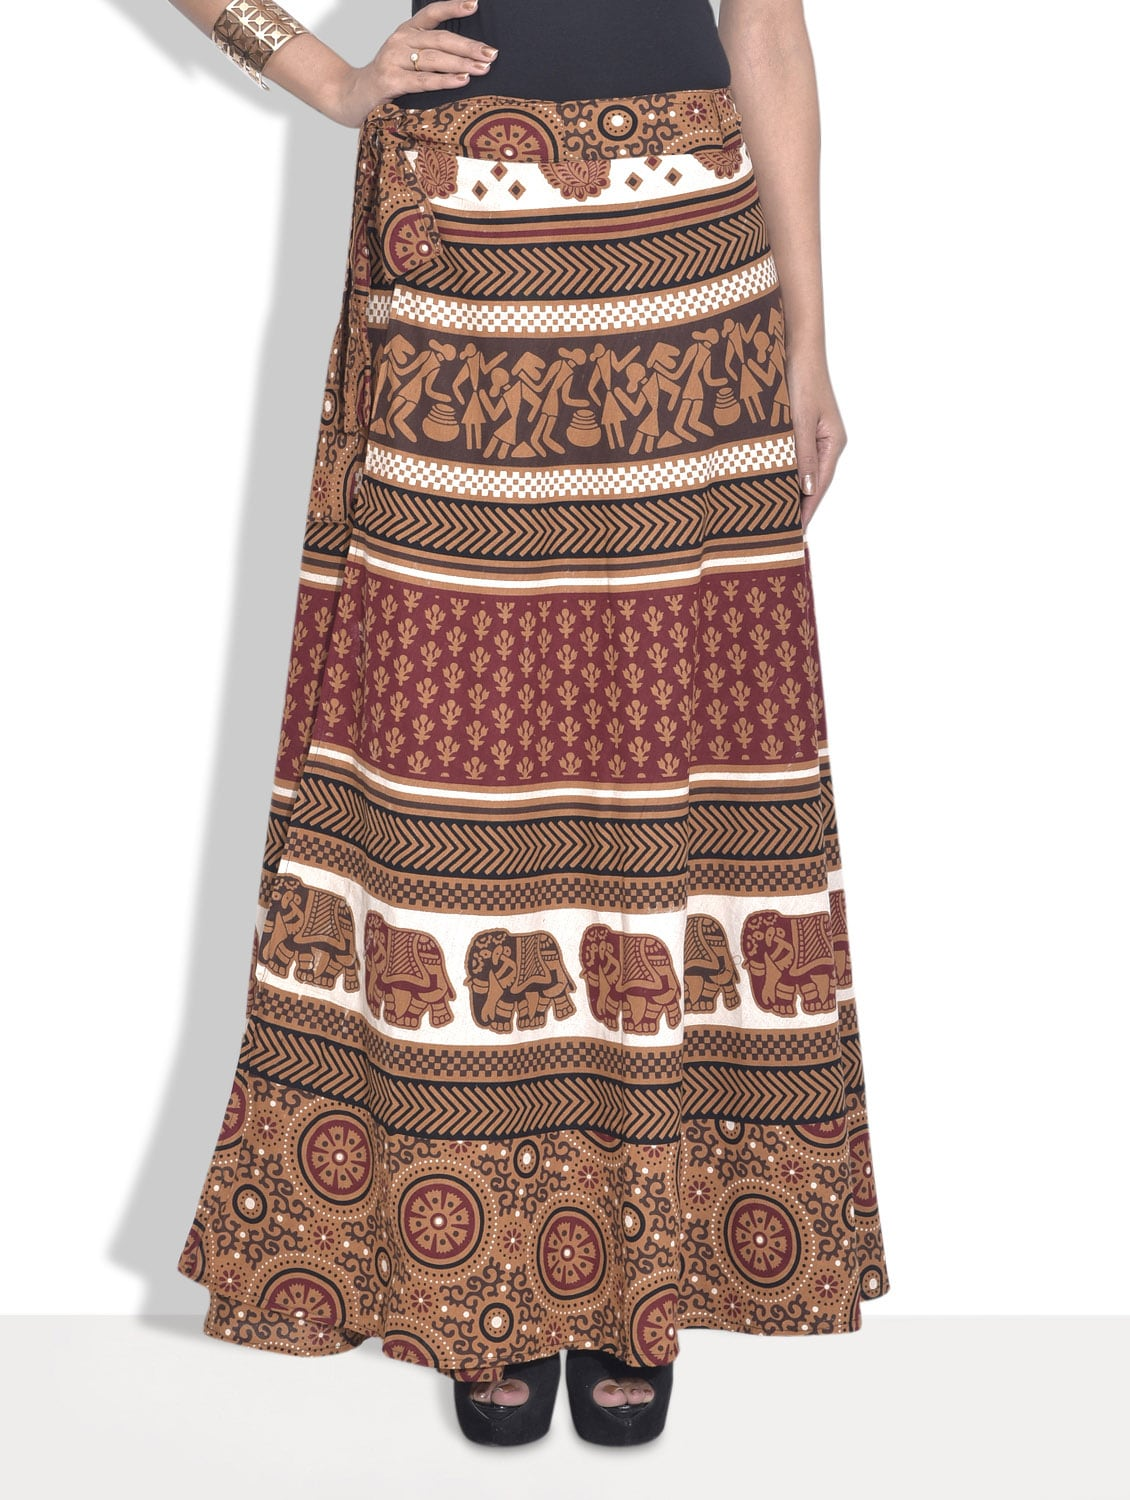 Brown Printed Cotton Ethnic Skirt - By